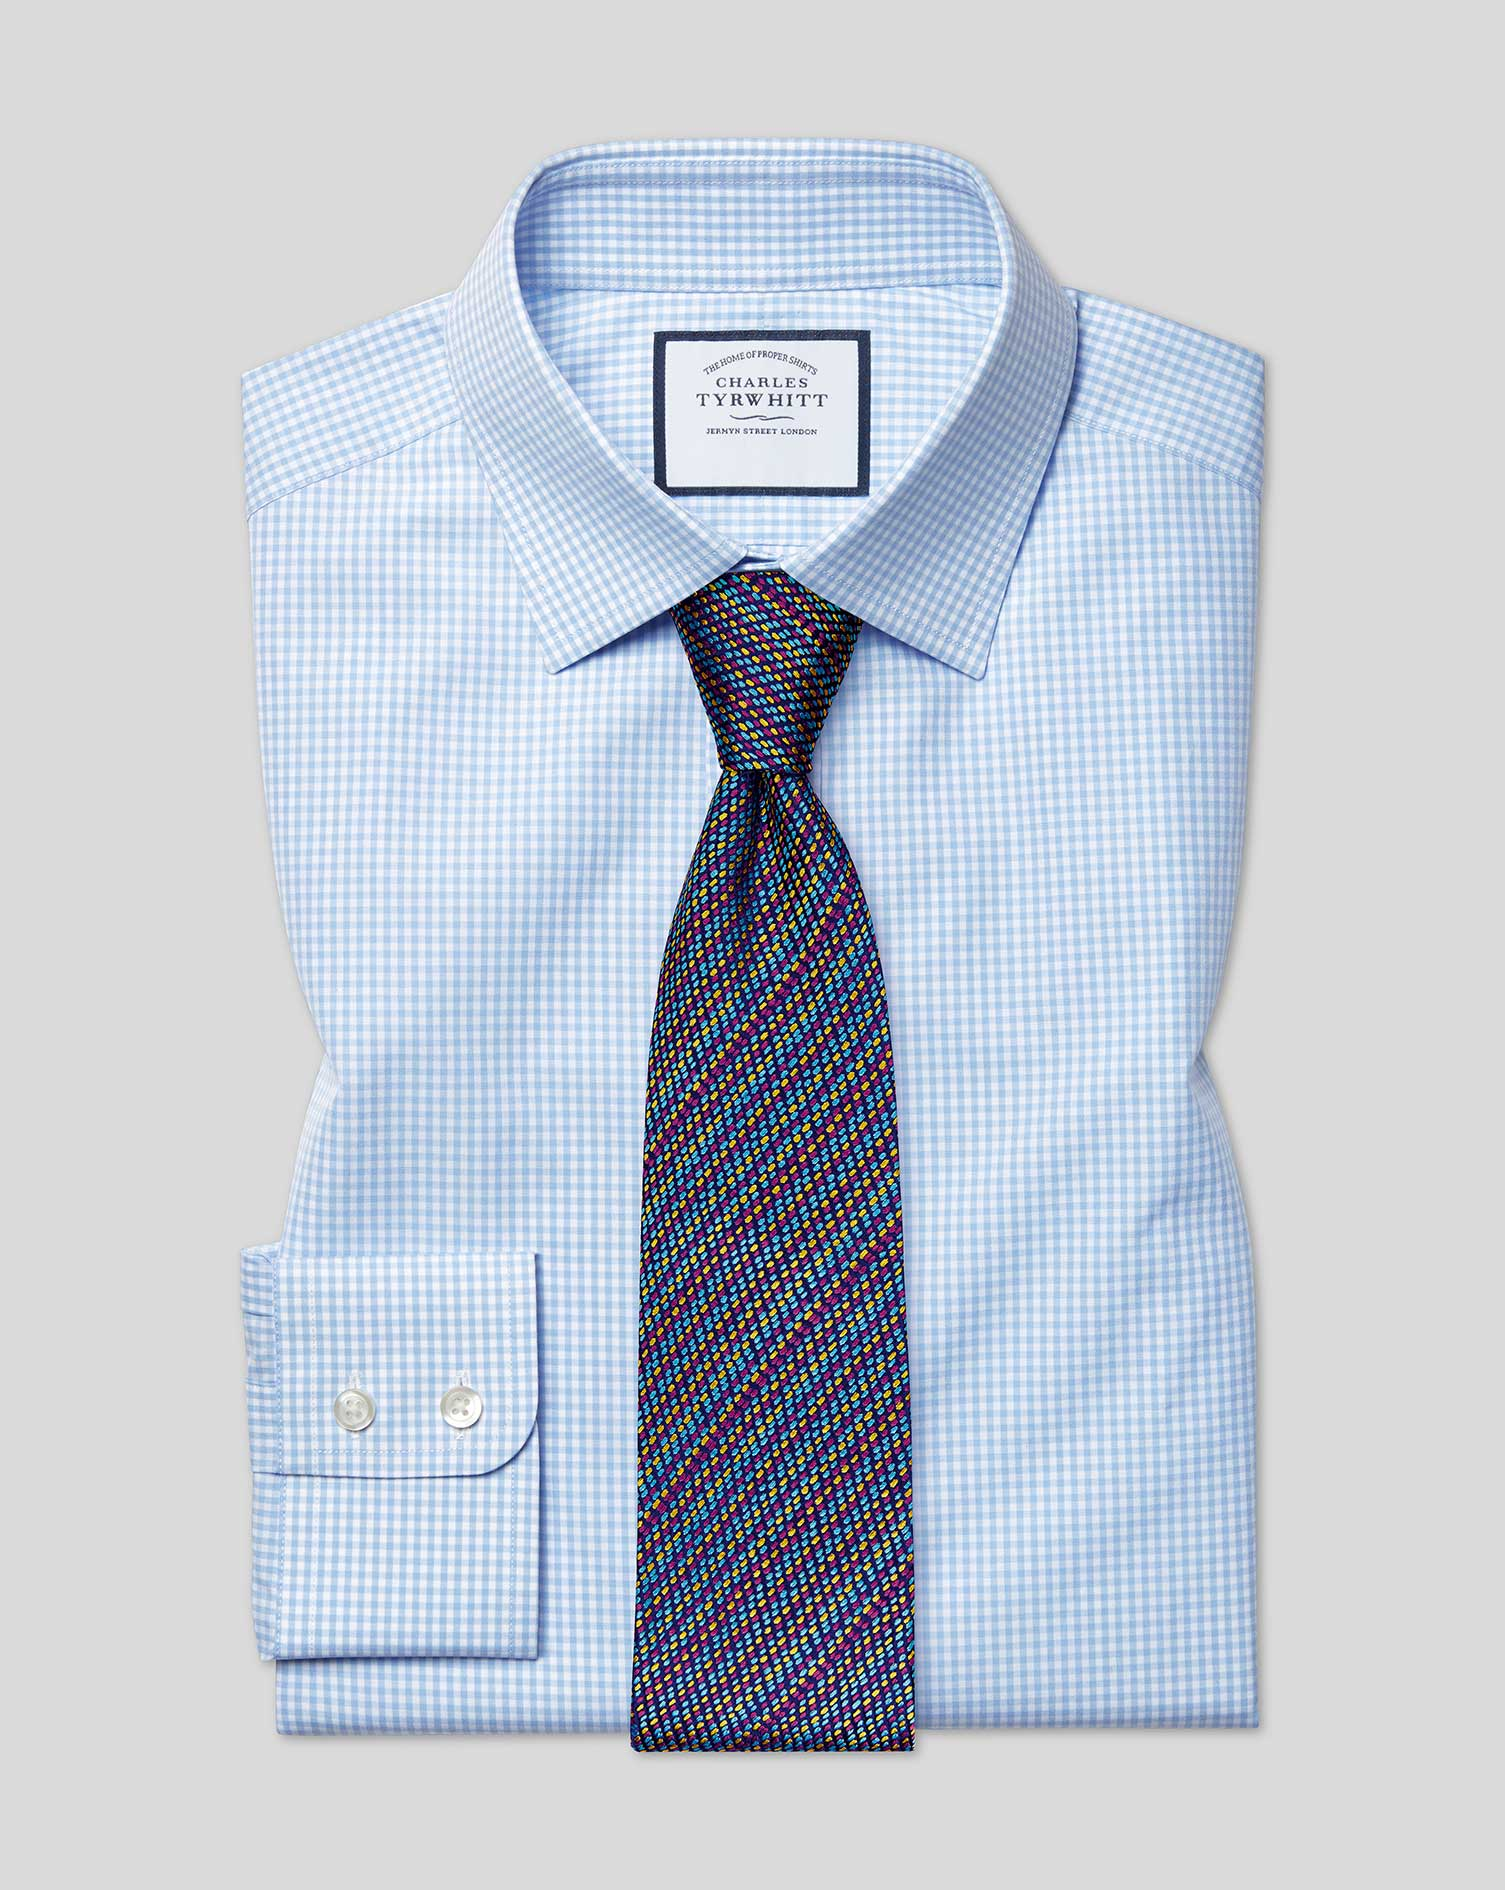 Slim Fit Sky Blue Small Gingham Cotton Formal Shirt Single Cuff Size 16.5/36 by Charles Tyrwhitt